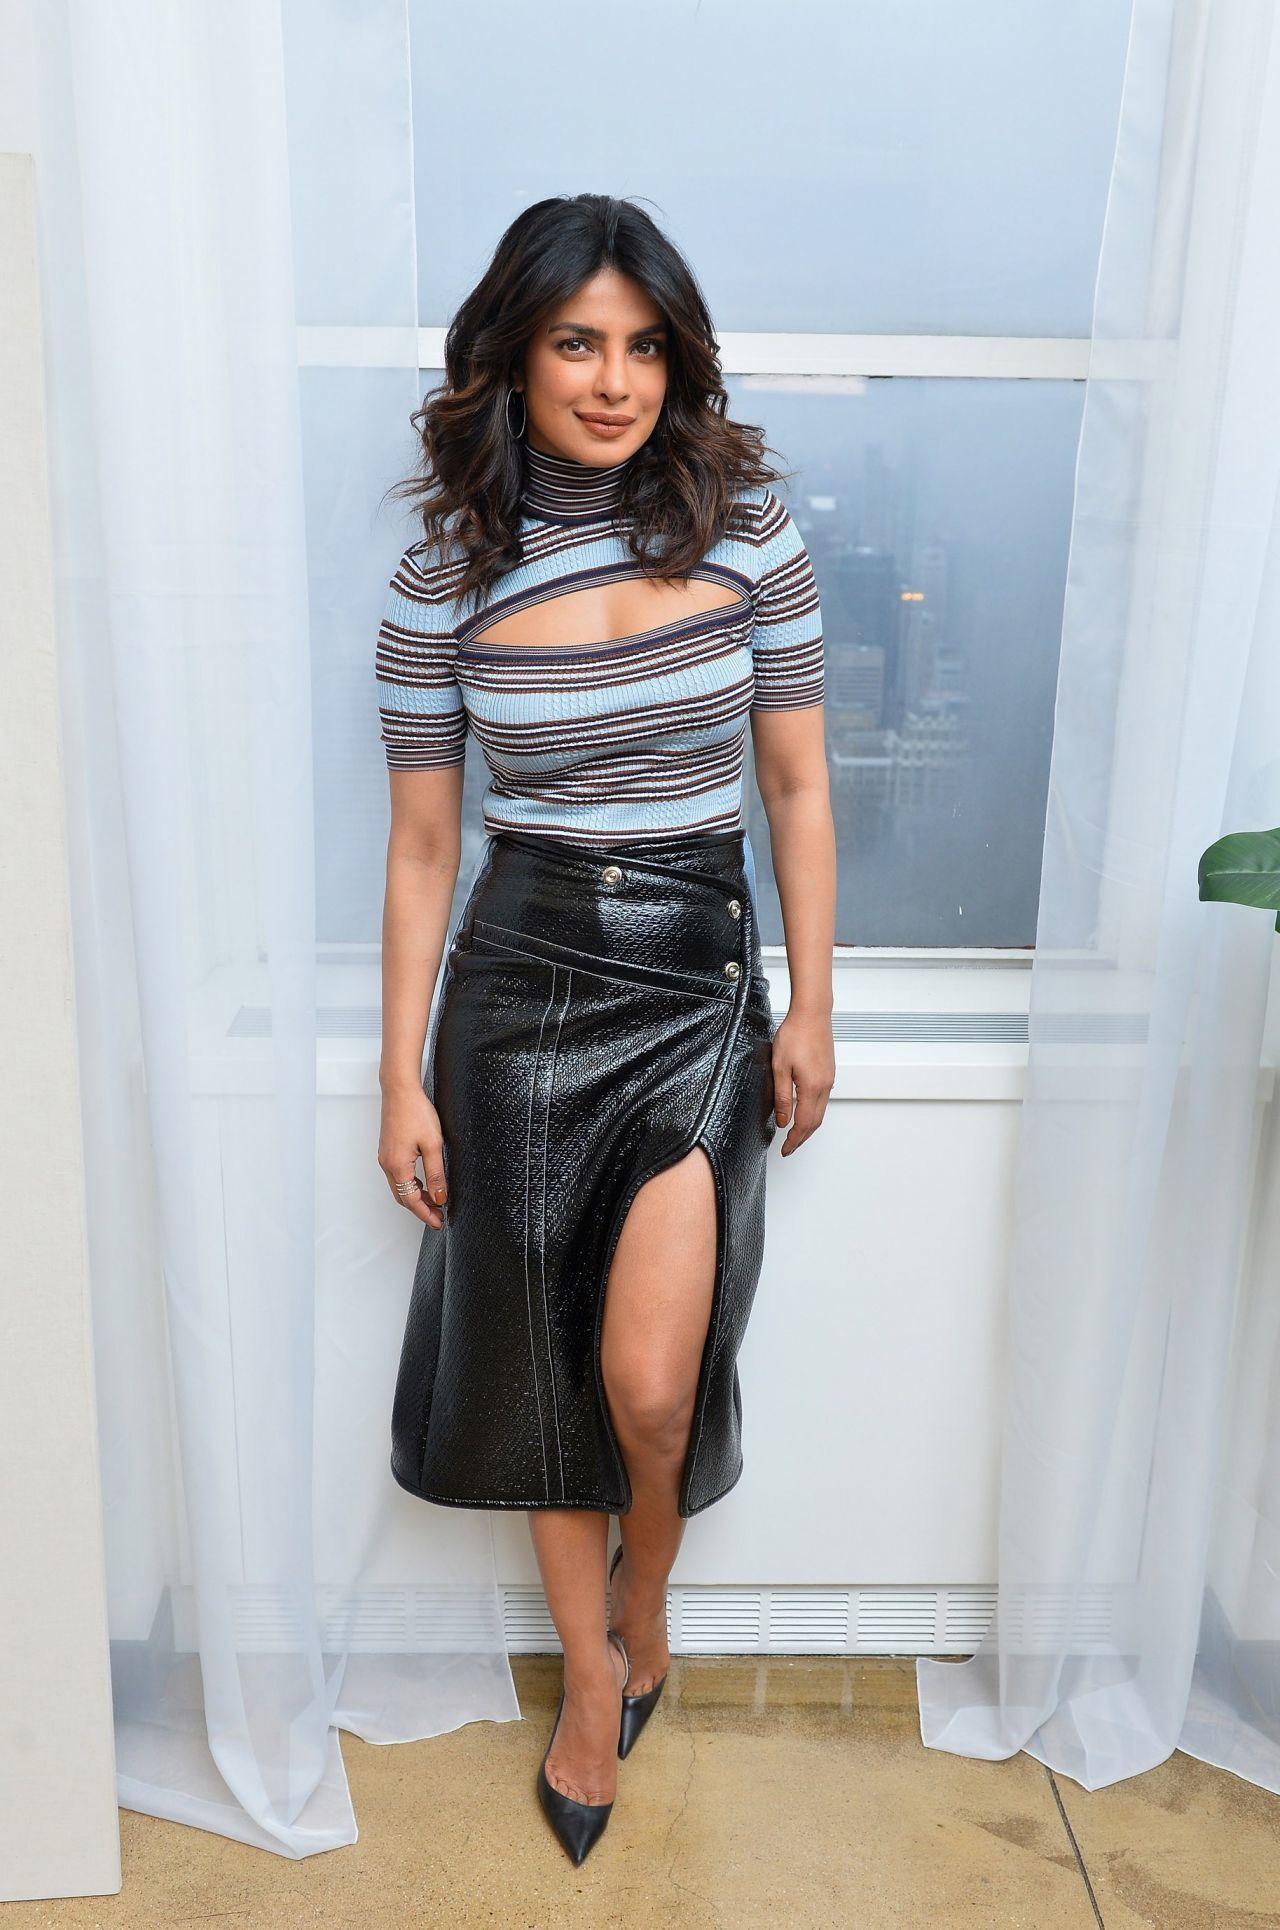 Priyanka Chopra feet awesome pic